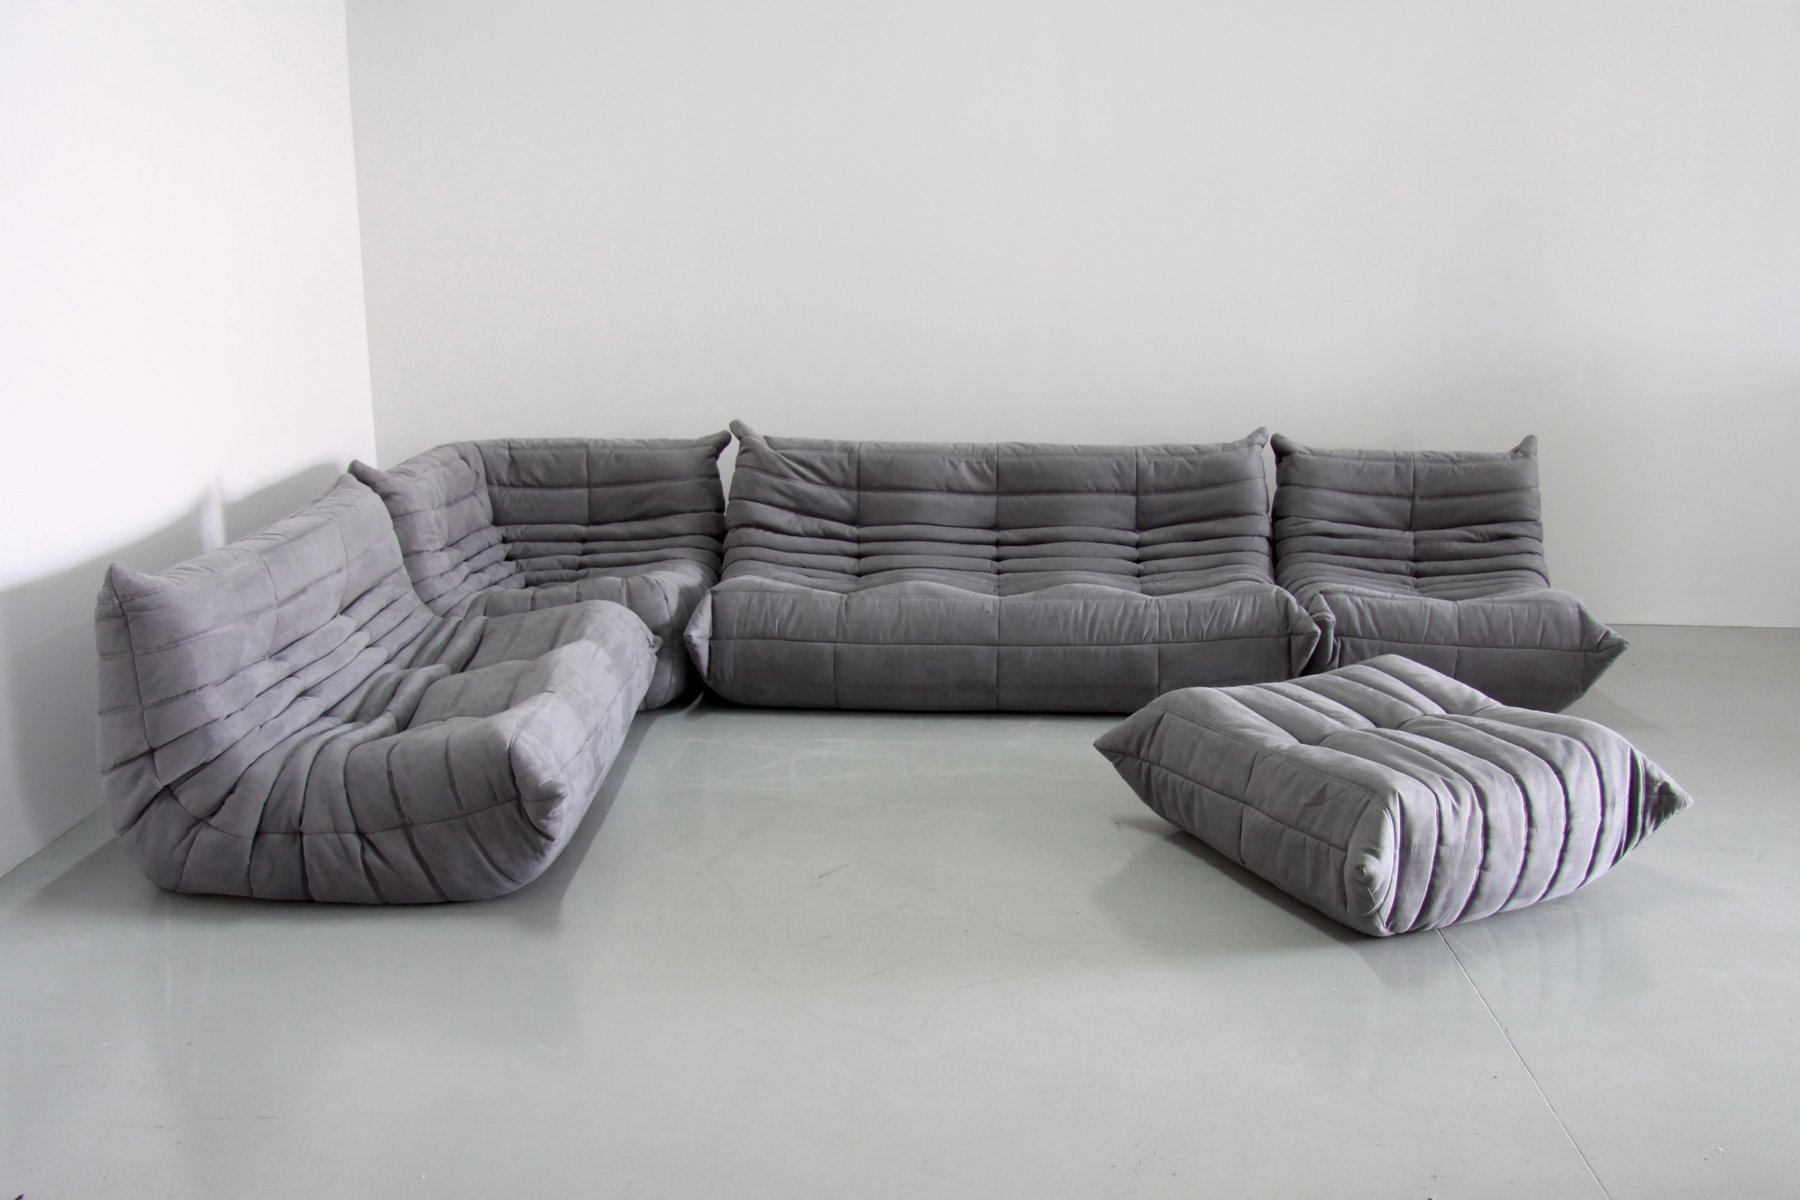 ligne roset togo sofa togo sofas designer michel ducaroy ligne roset thesofa. Black Bedroom Furniture Sets. Home Design Ideas